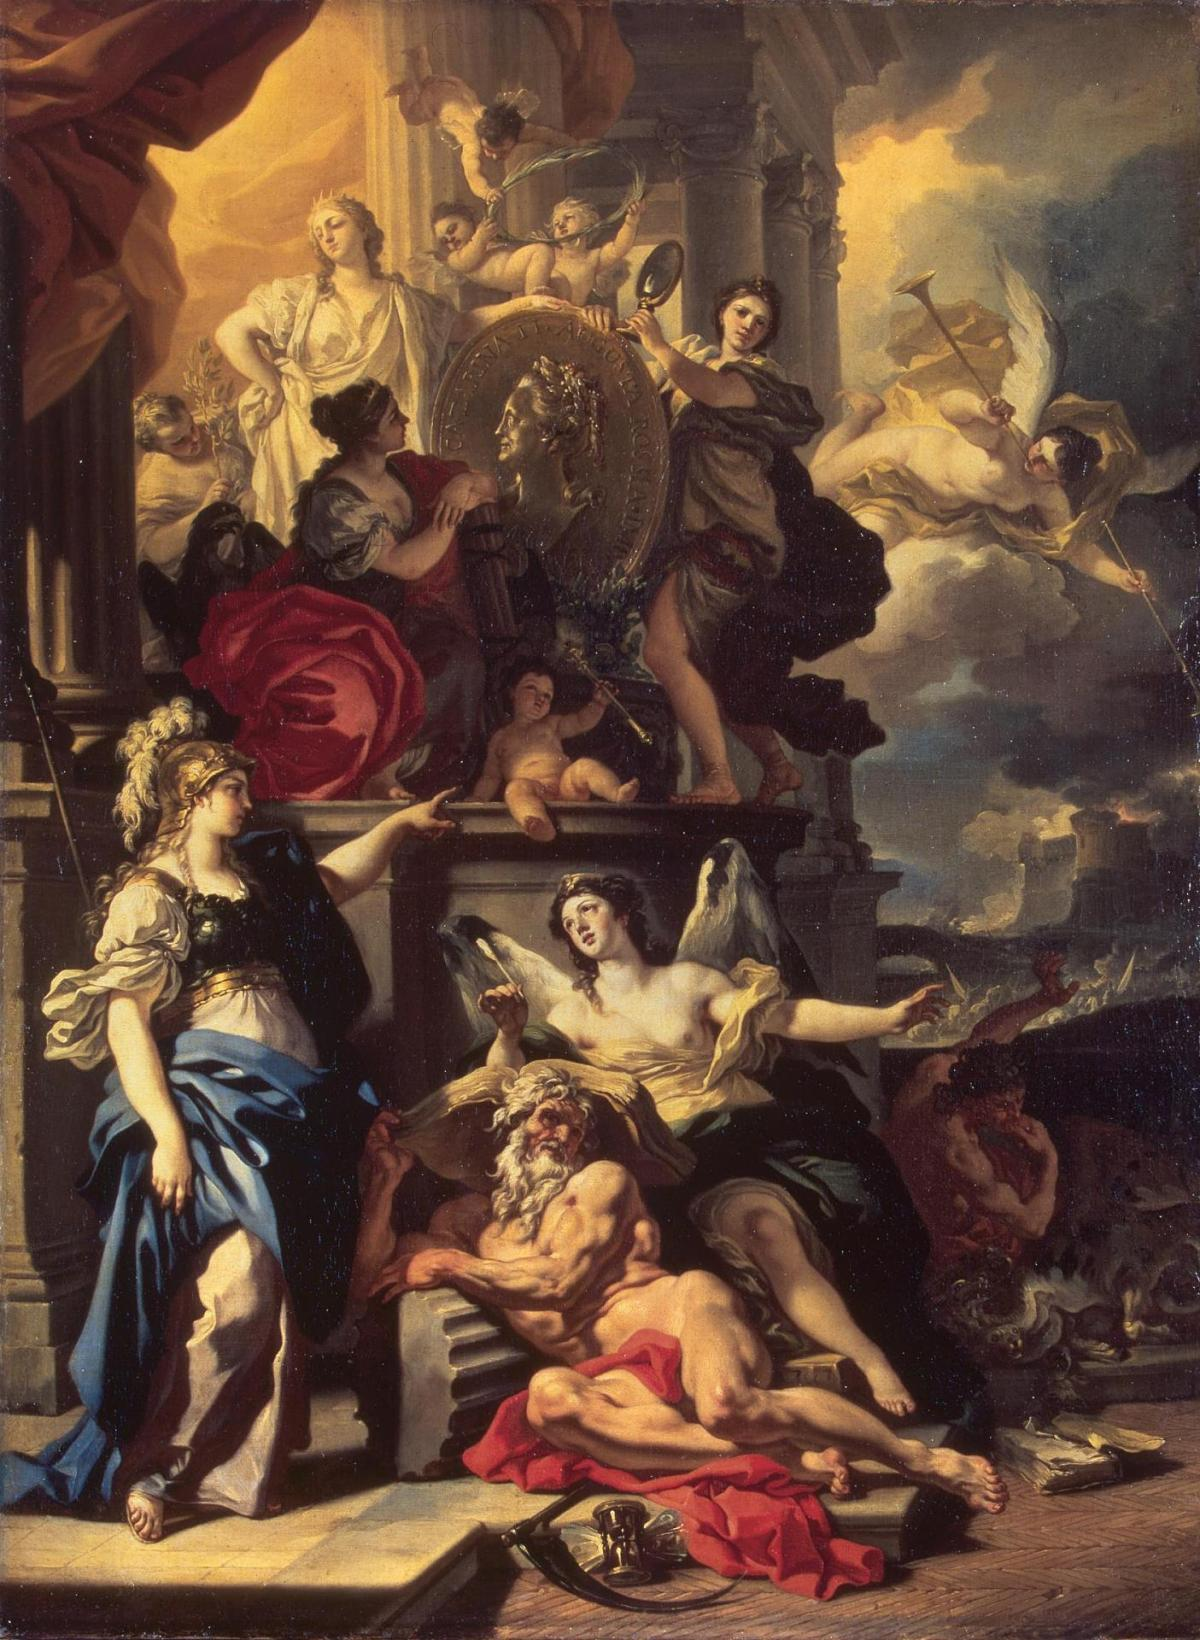 Allegory of Reign by Francesco Solimena